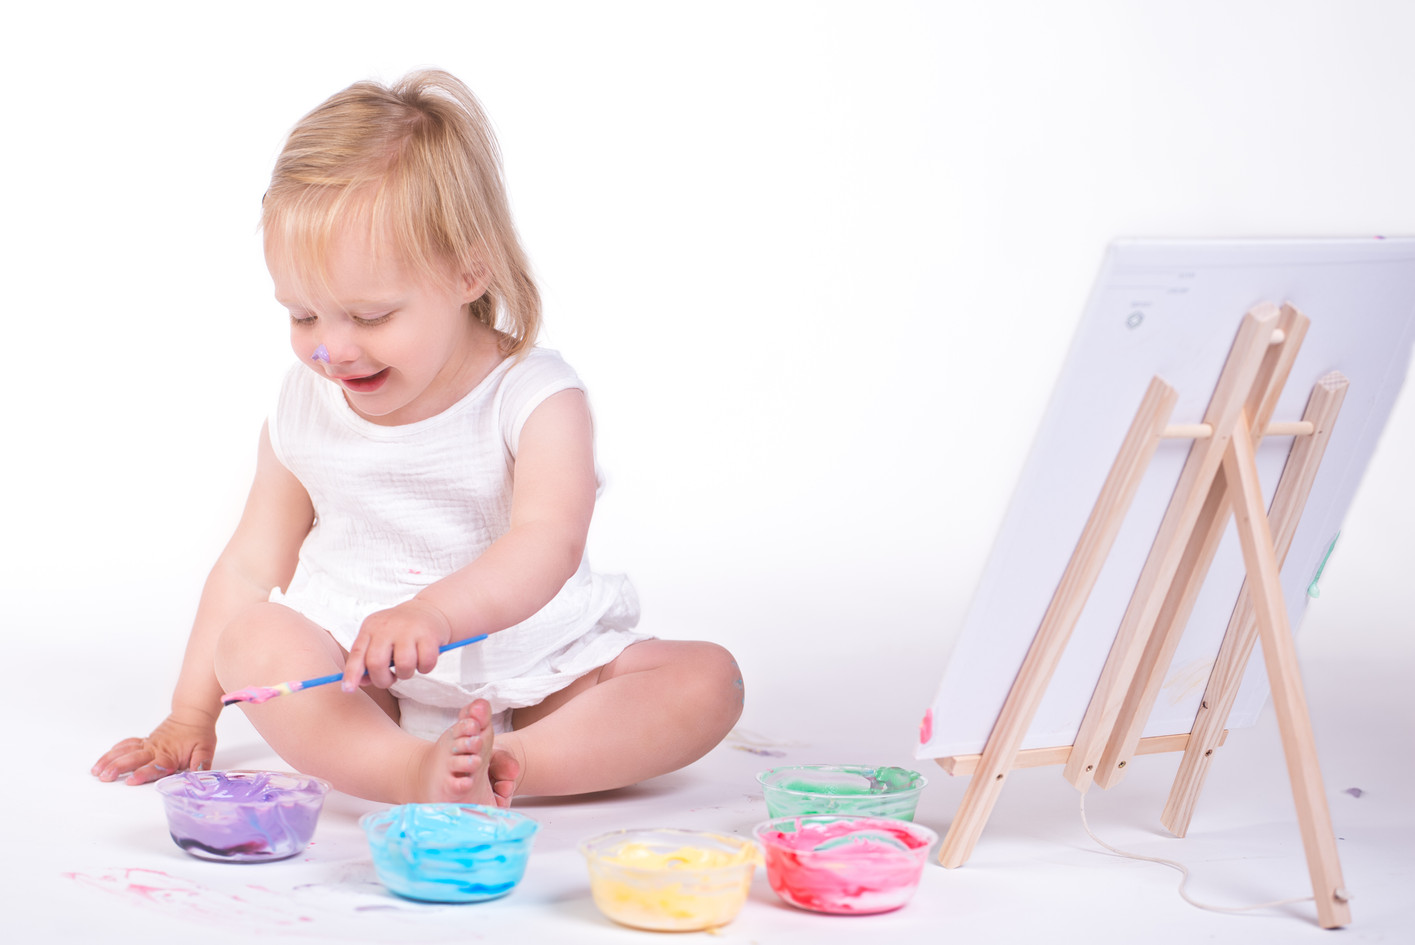 Finger Paint Photo Session